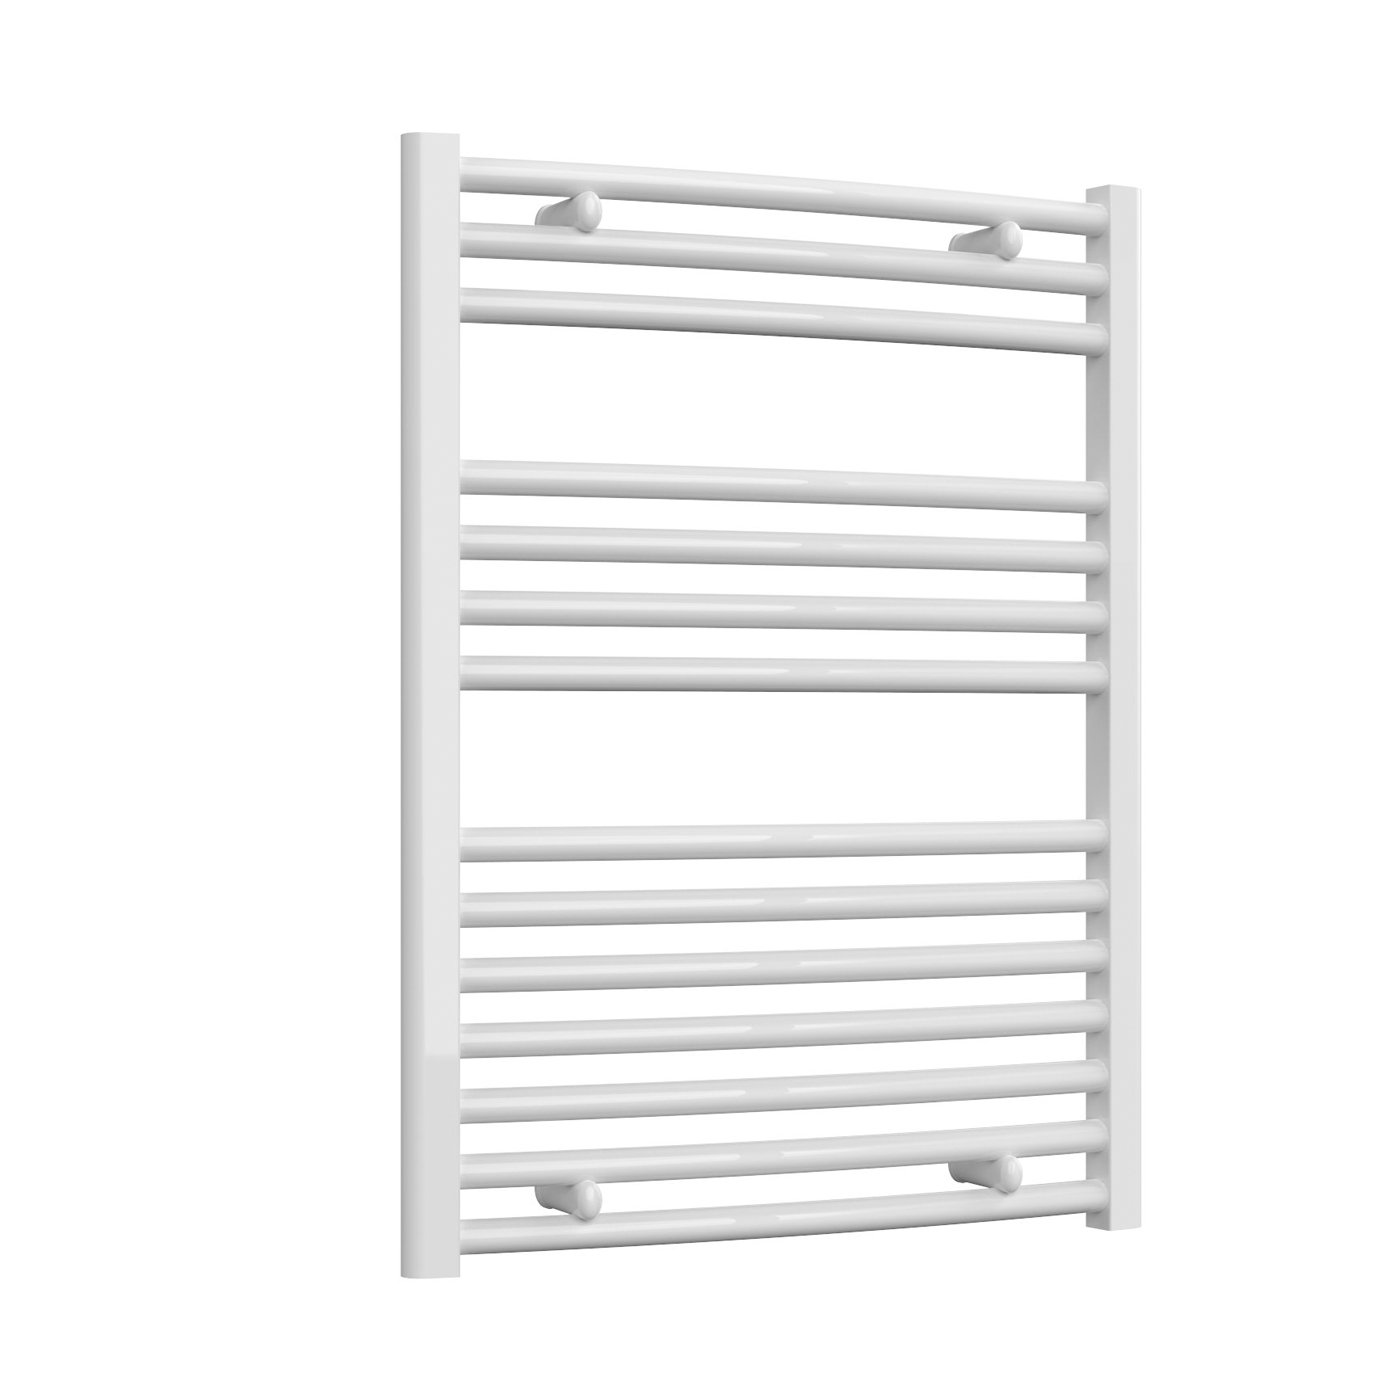 Reina Diva Curved Heated Towel Rail 800mm H x 600mm W White